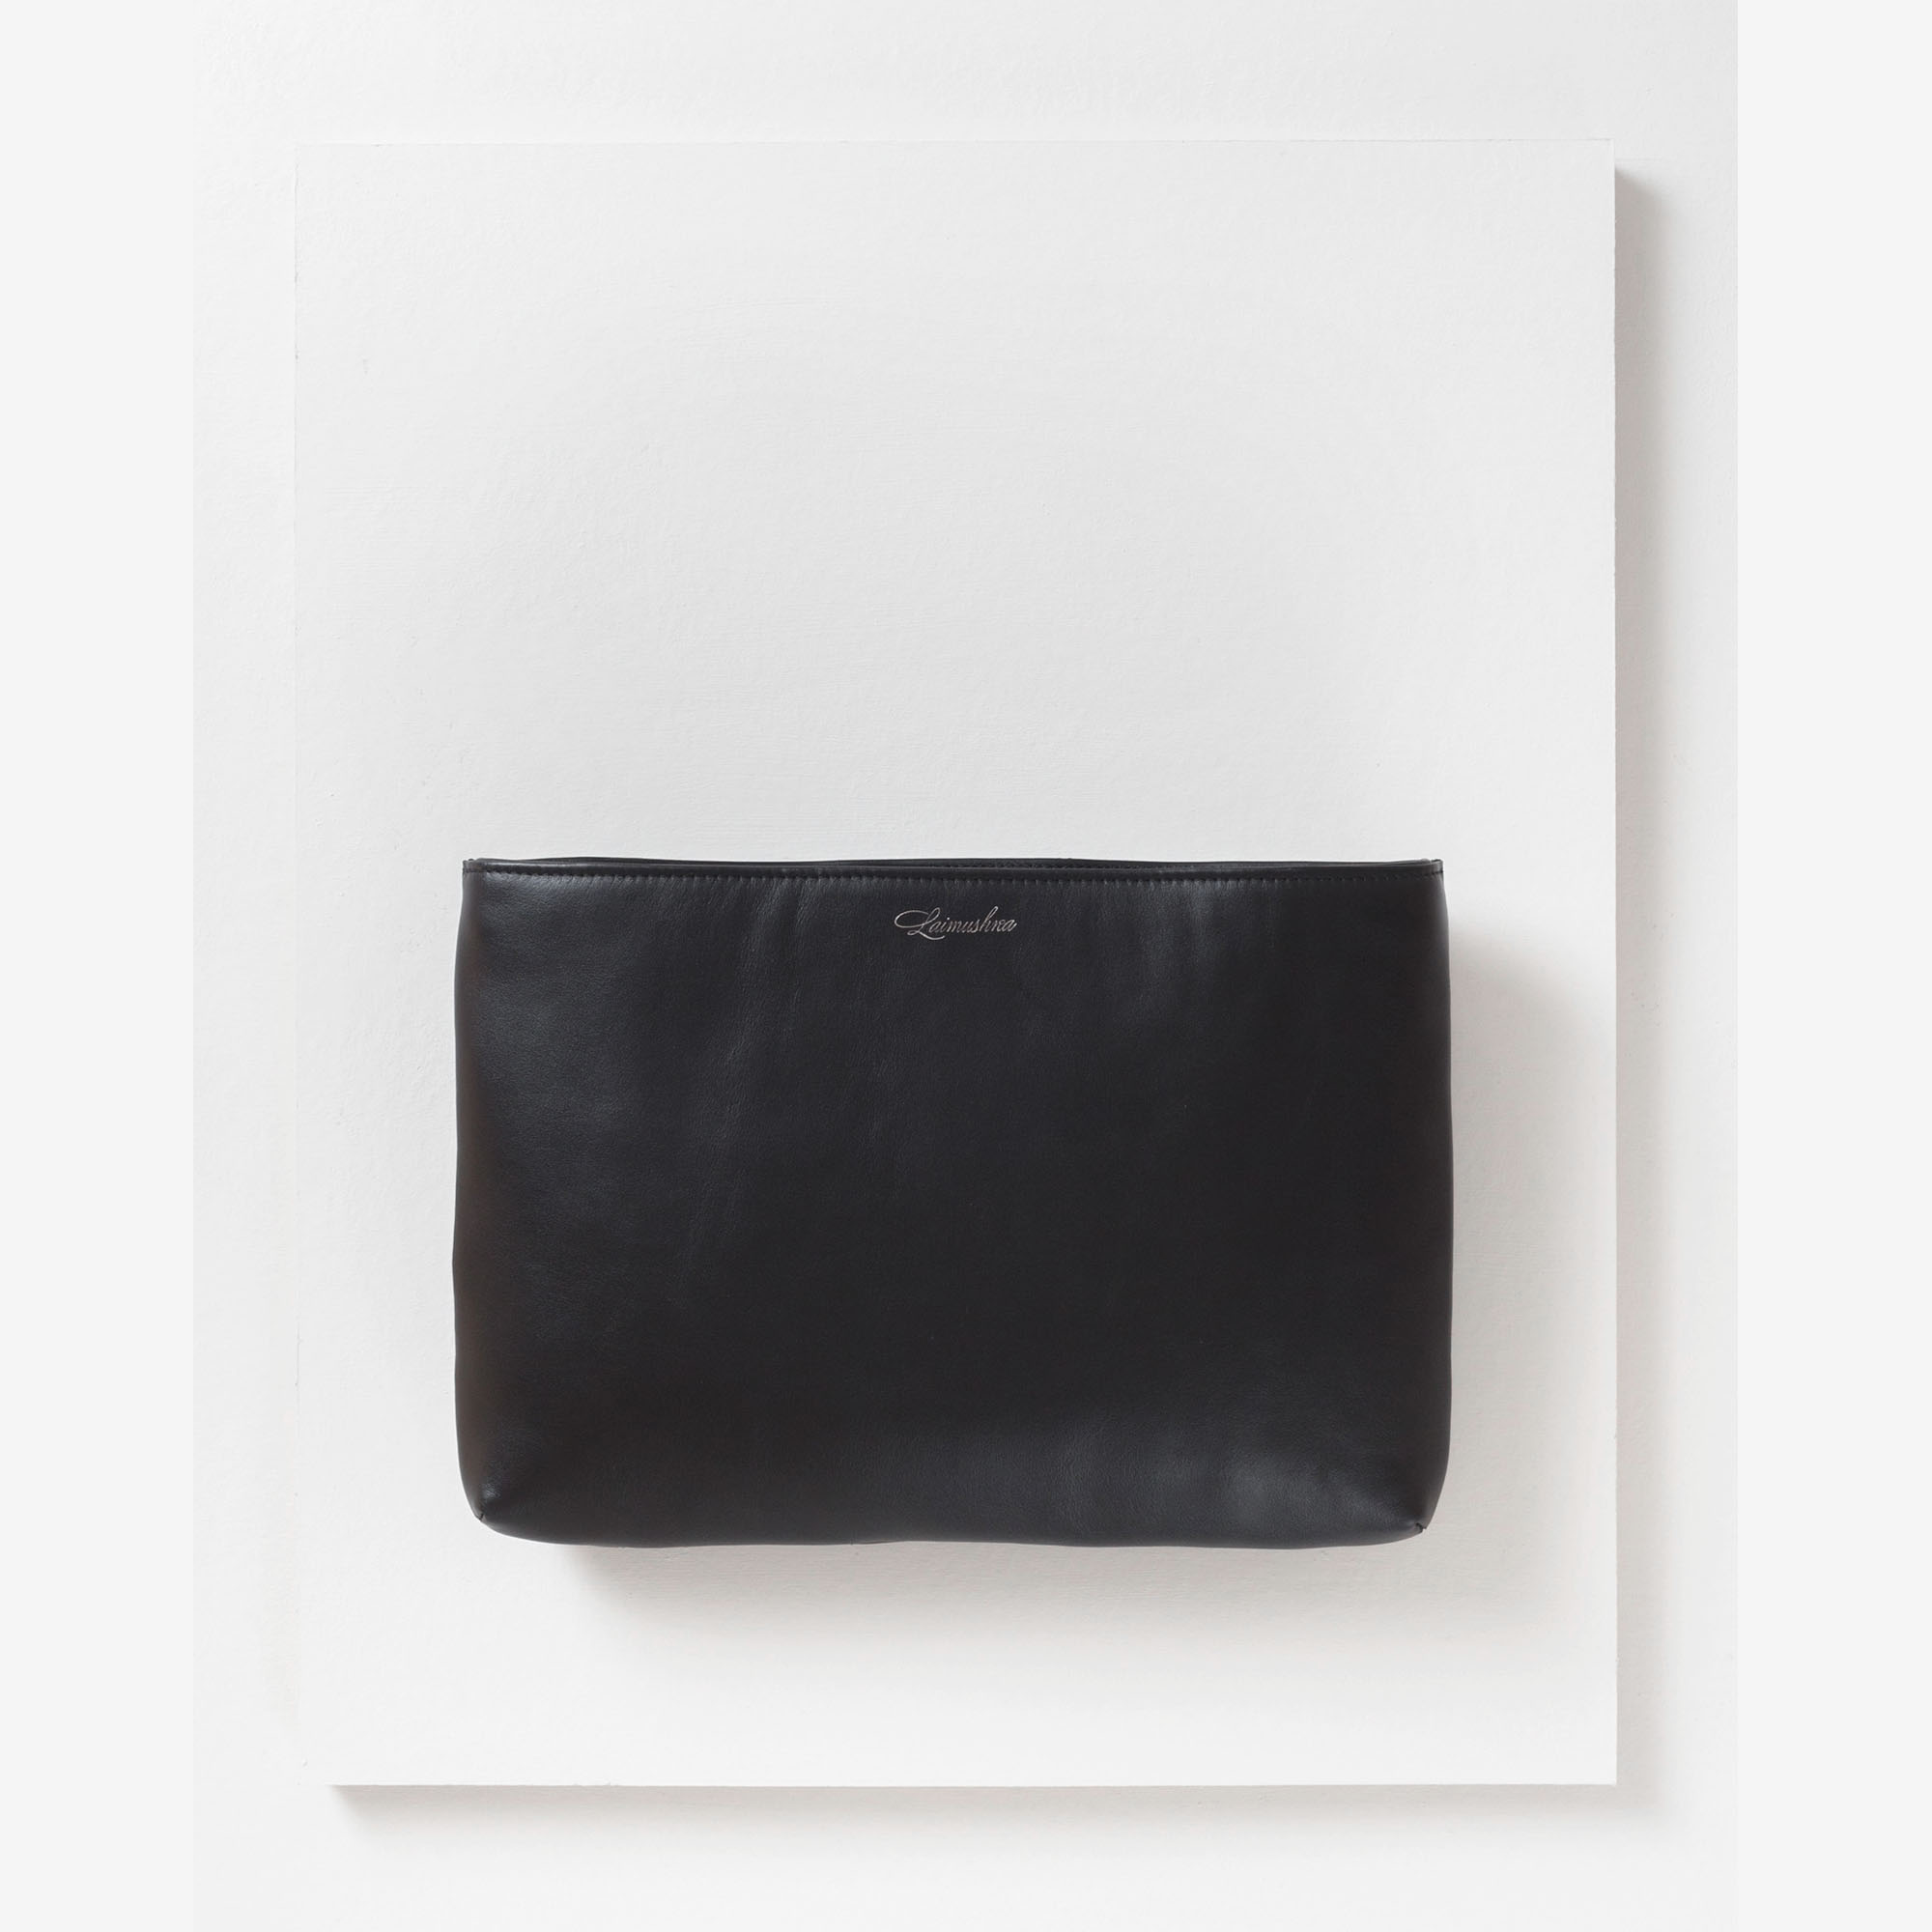 Laimushka black leather quilted oversized pouch